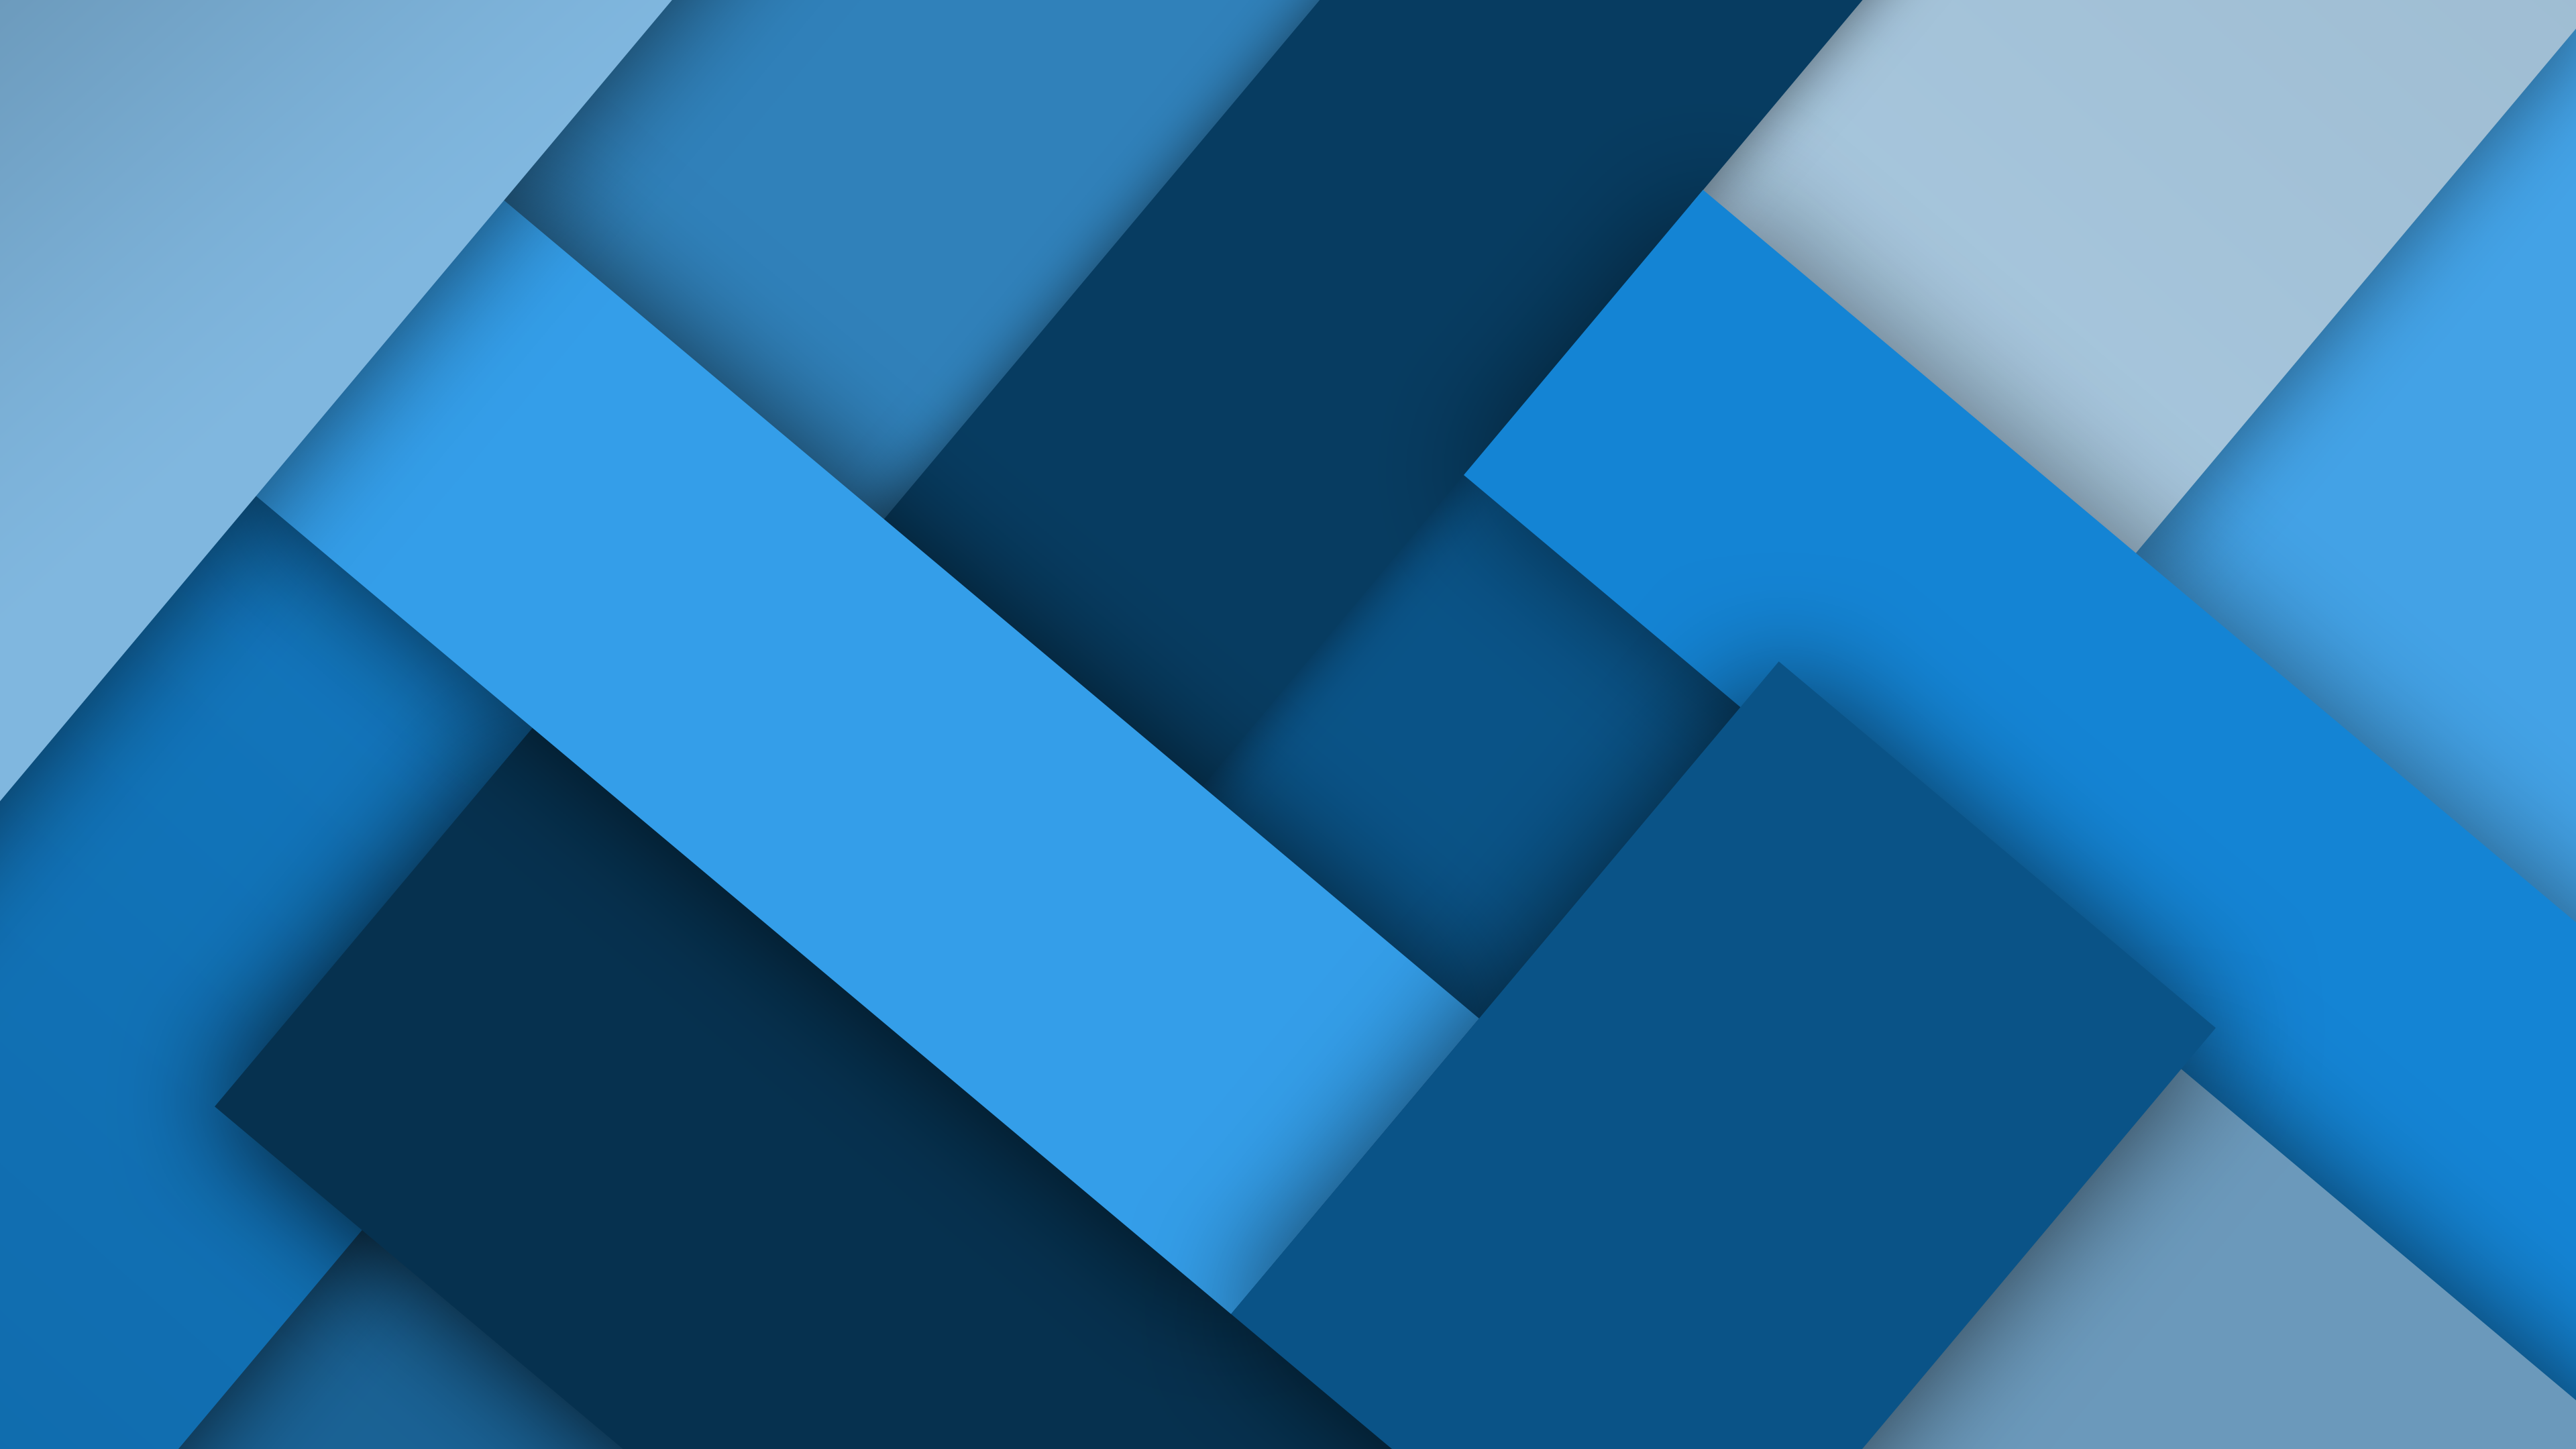 Blocks Blue 4k Ultra HD Wallpaper And Background Image